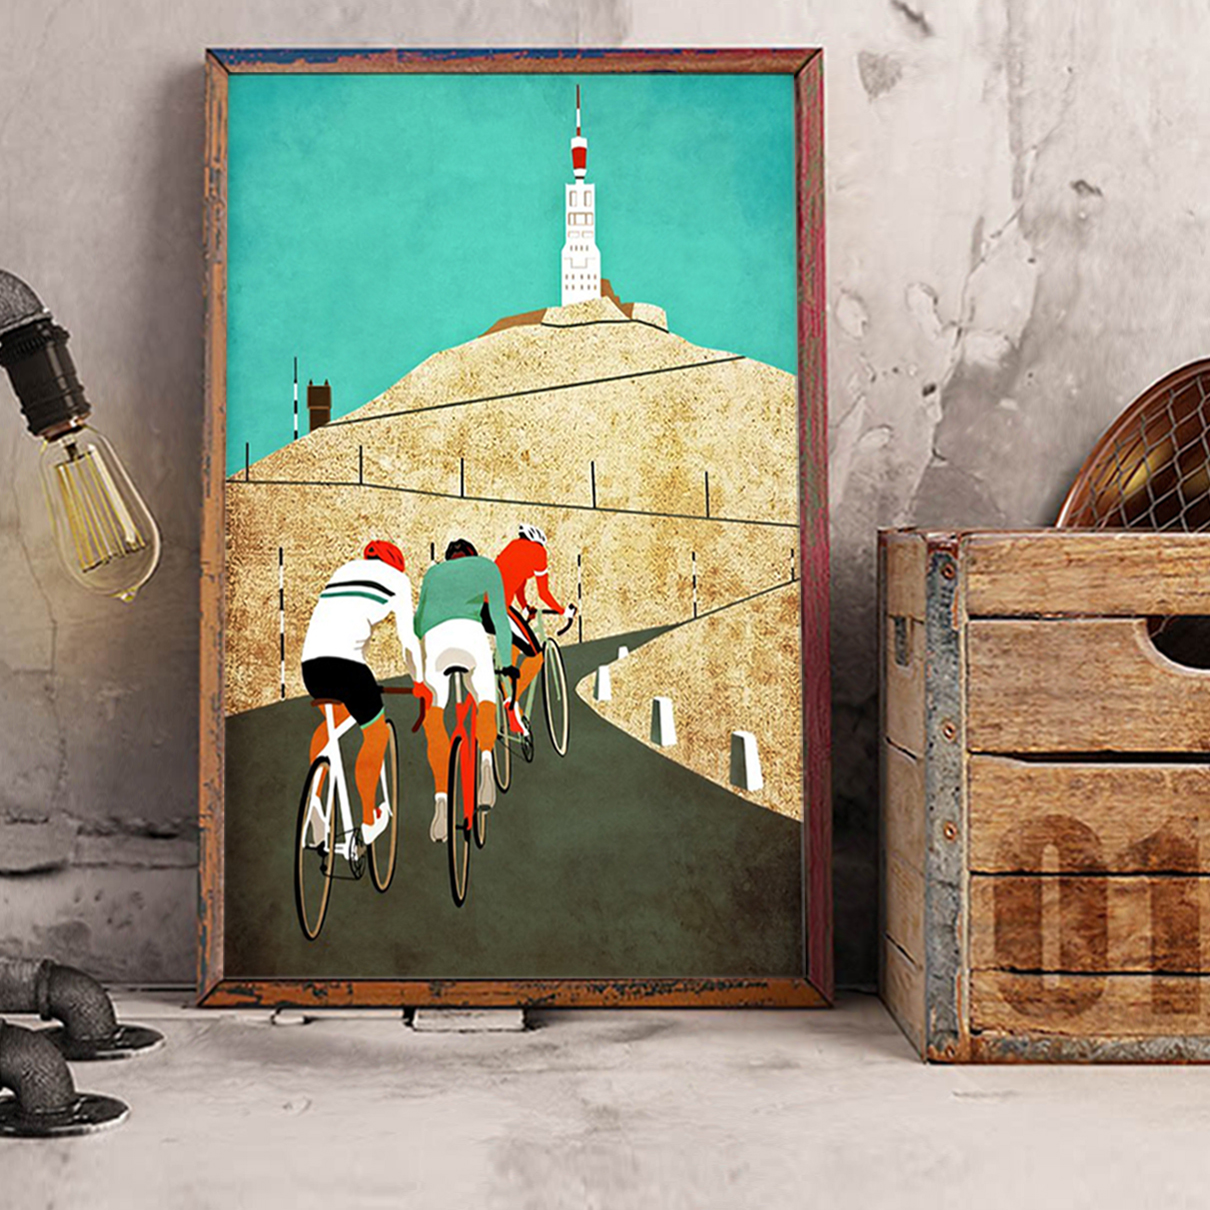 Cycling mount ventoux poster A1